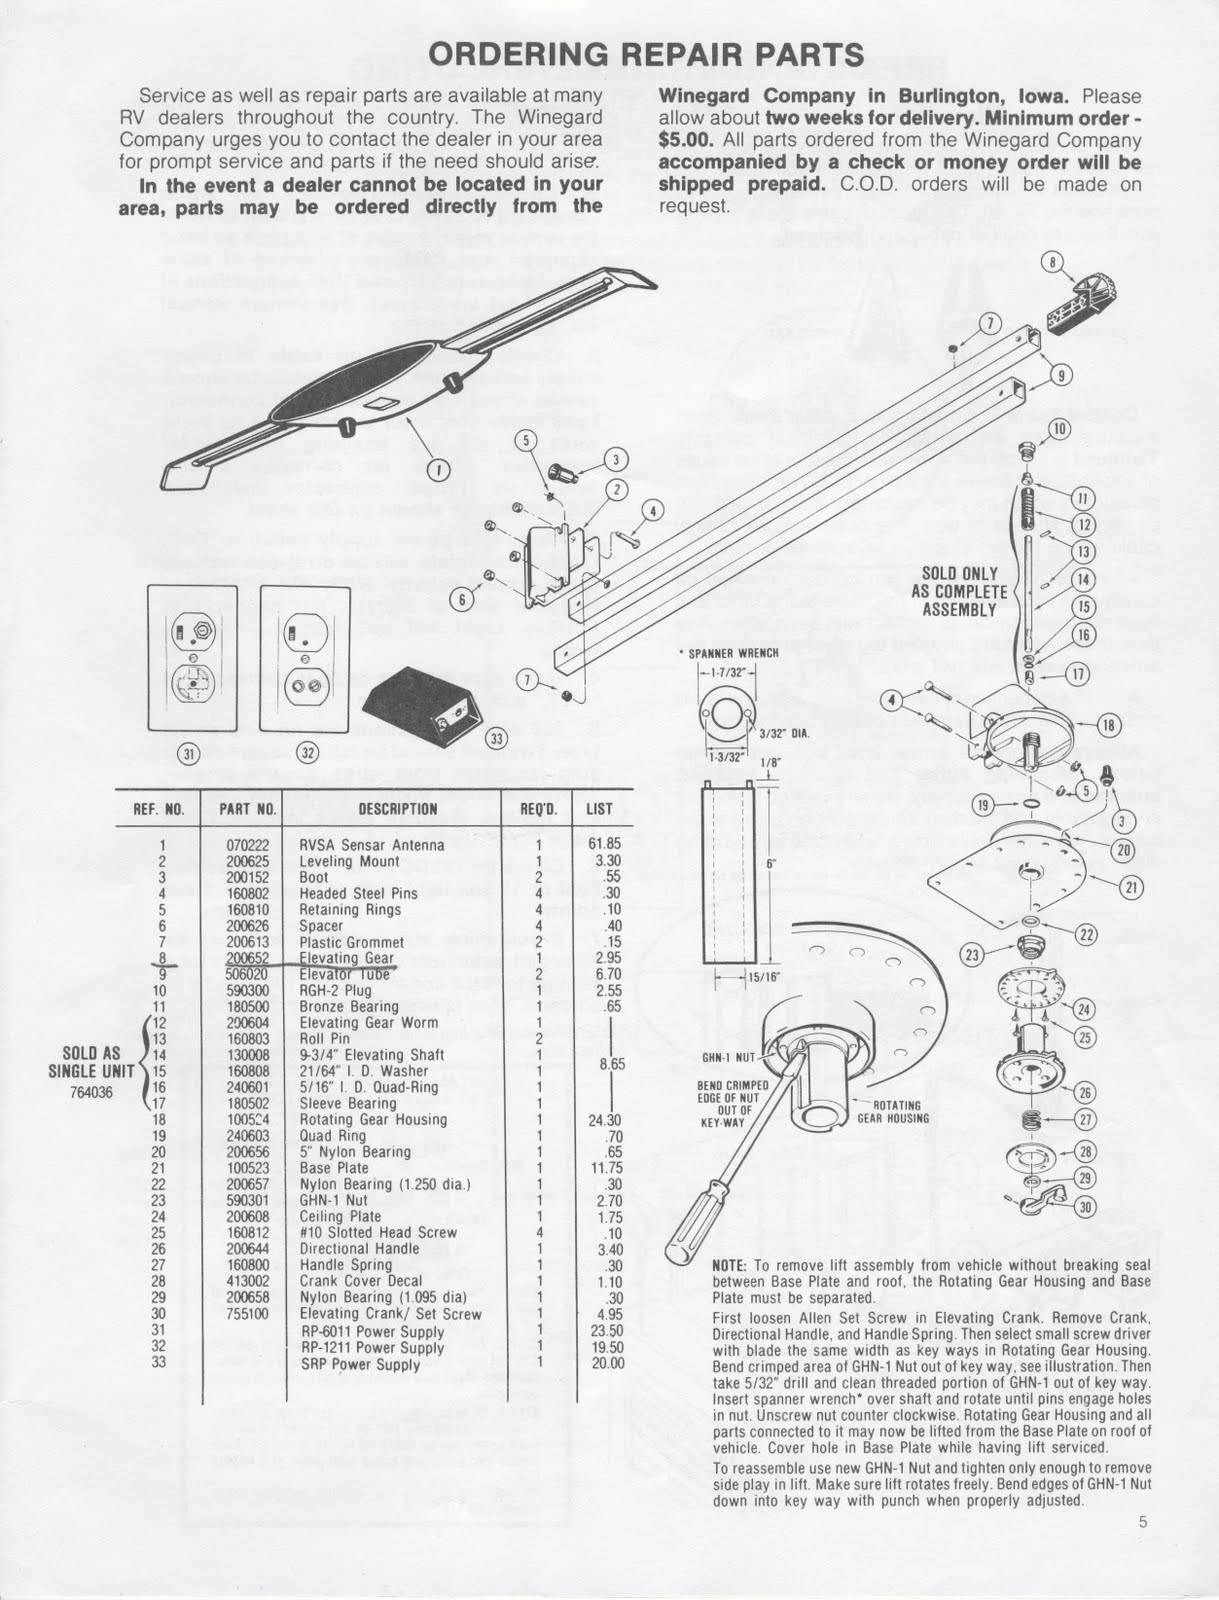 ant parts diagram atwood rv furnace wiring fleetwood pace arrow manual autos post